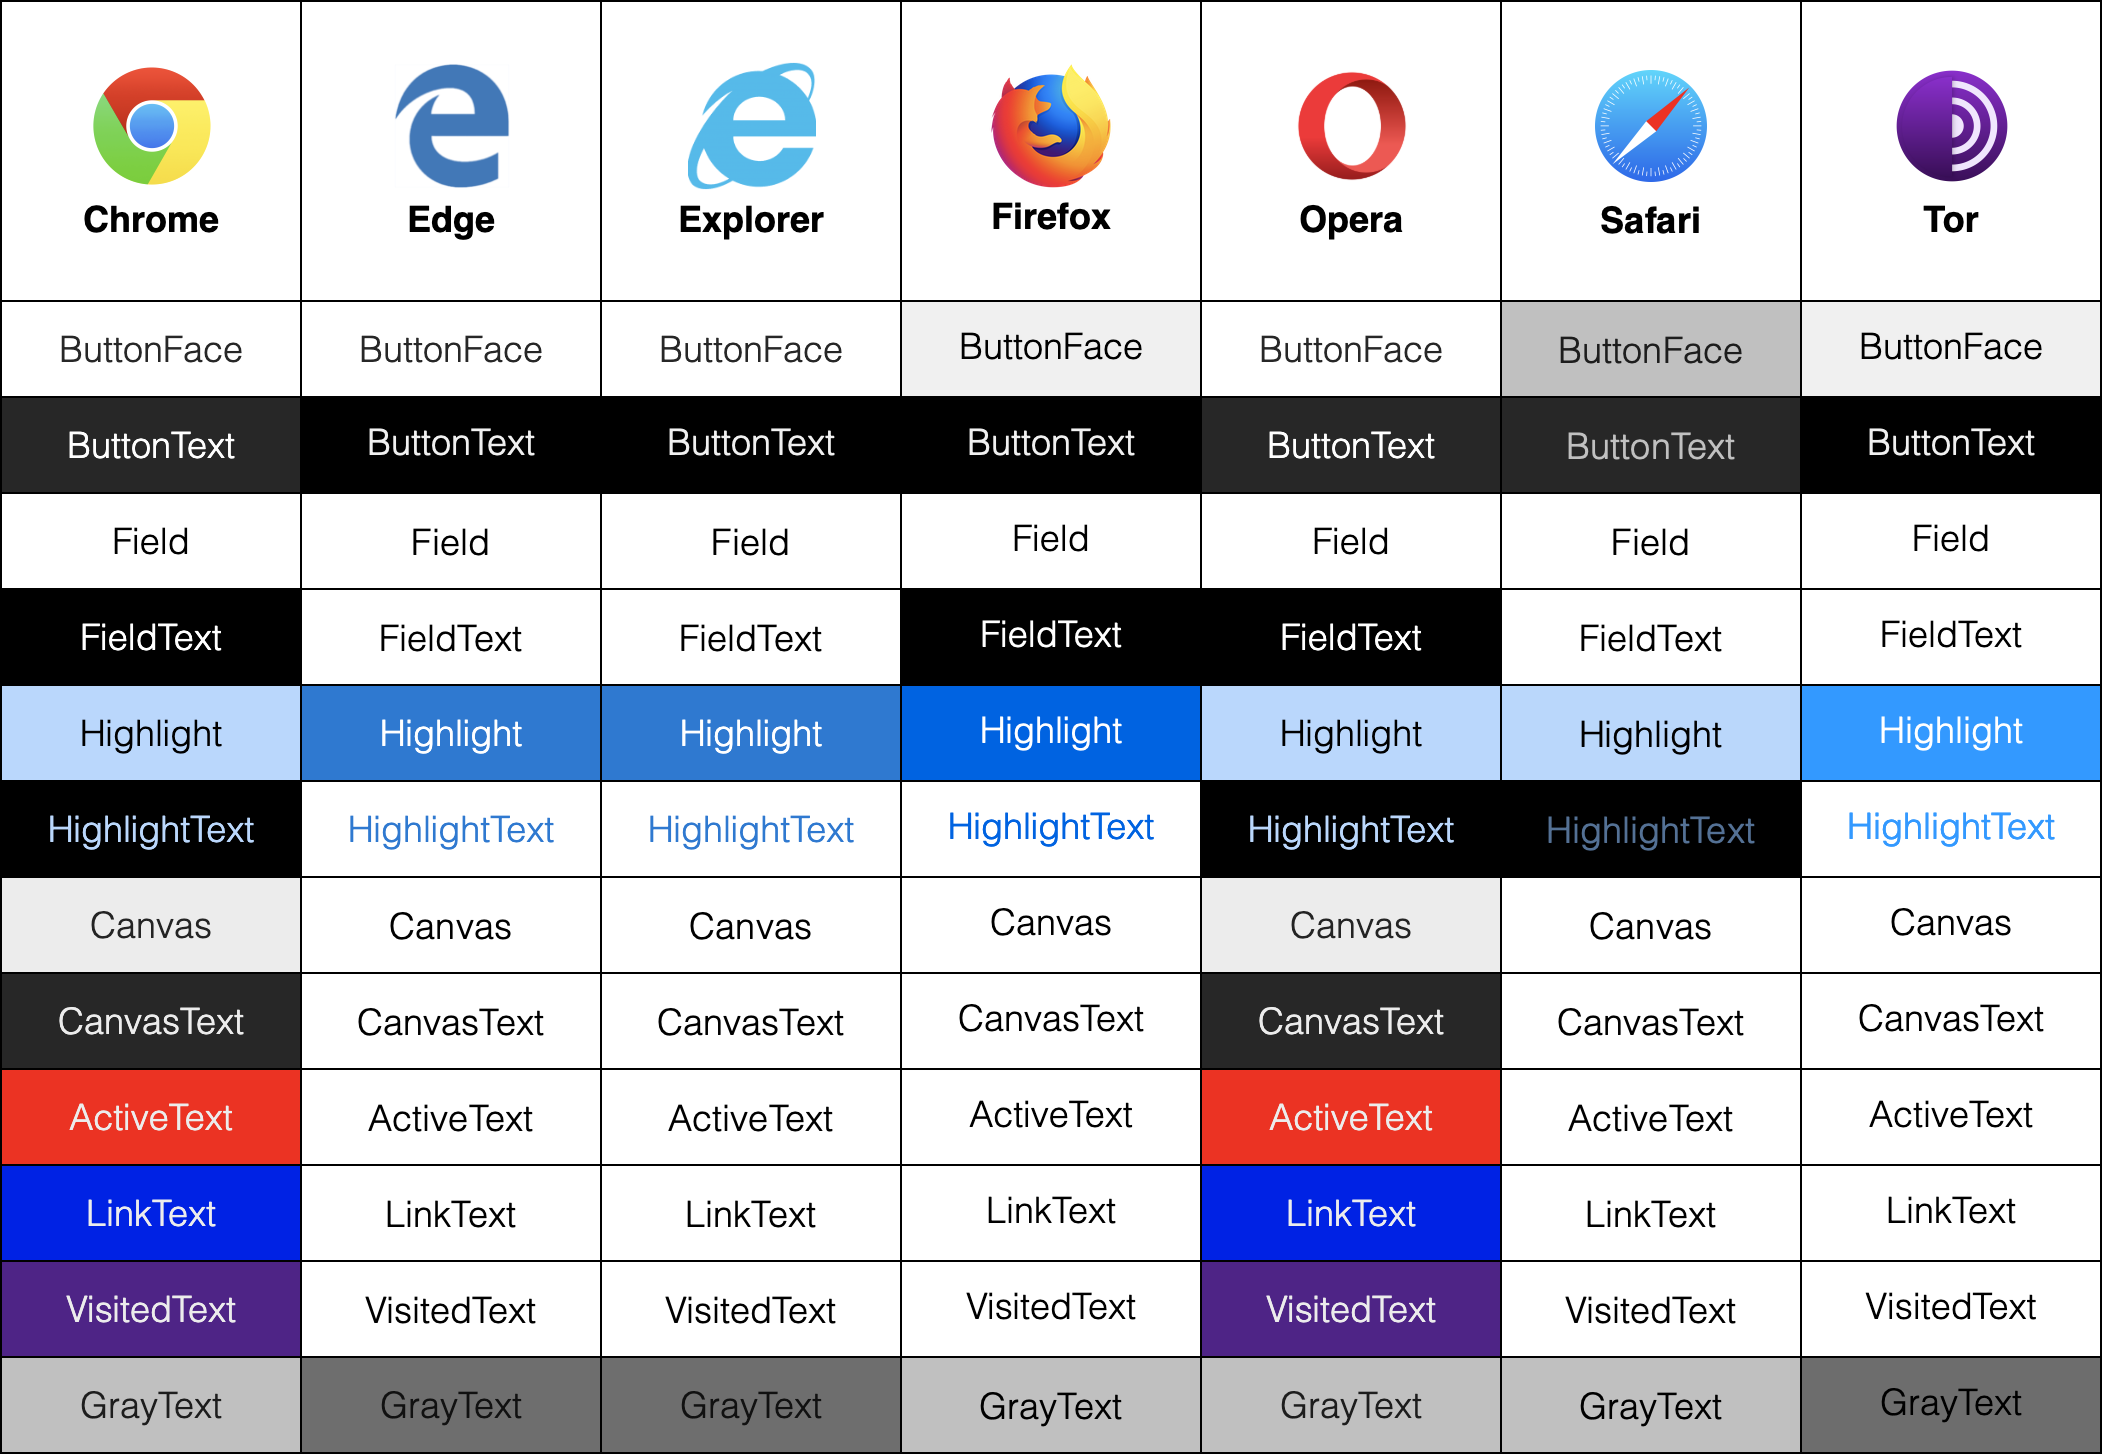 Table of system colors by browser displaying Chrome, Edge, Explorer, Firefox, Opera, Safari, and Tor